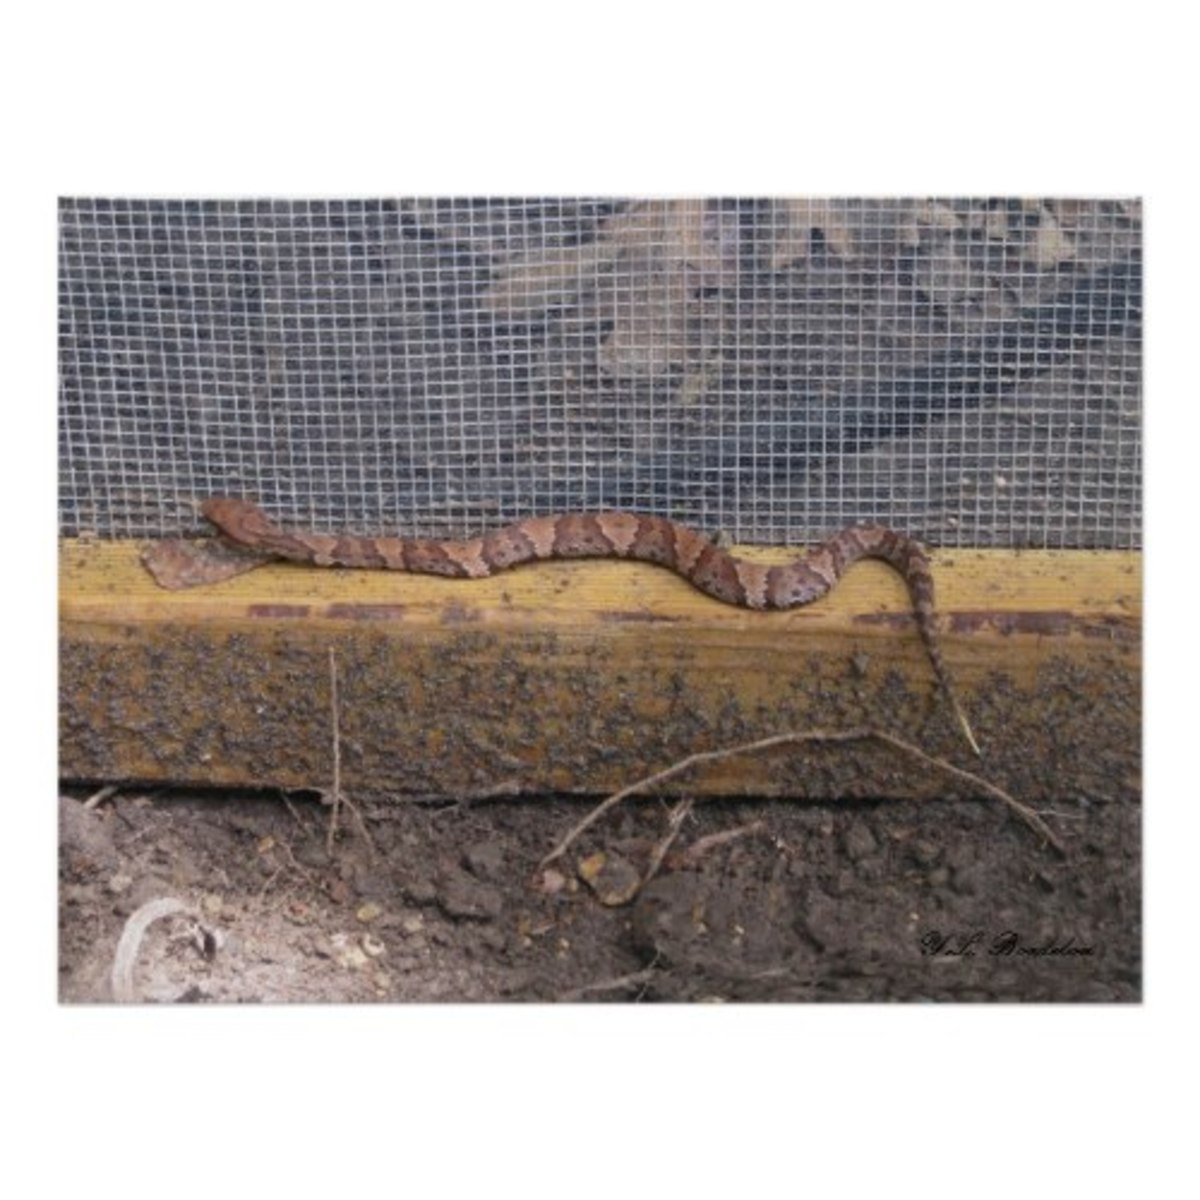 cottonmouth_snake